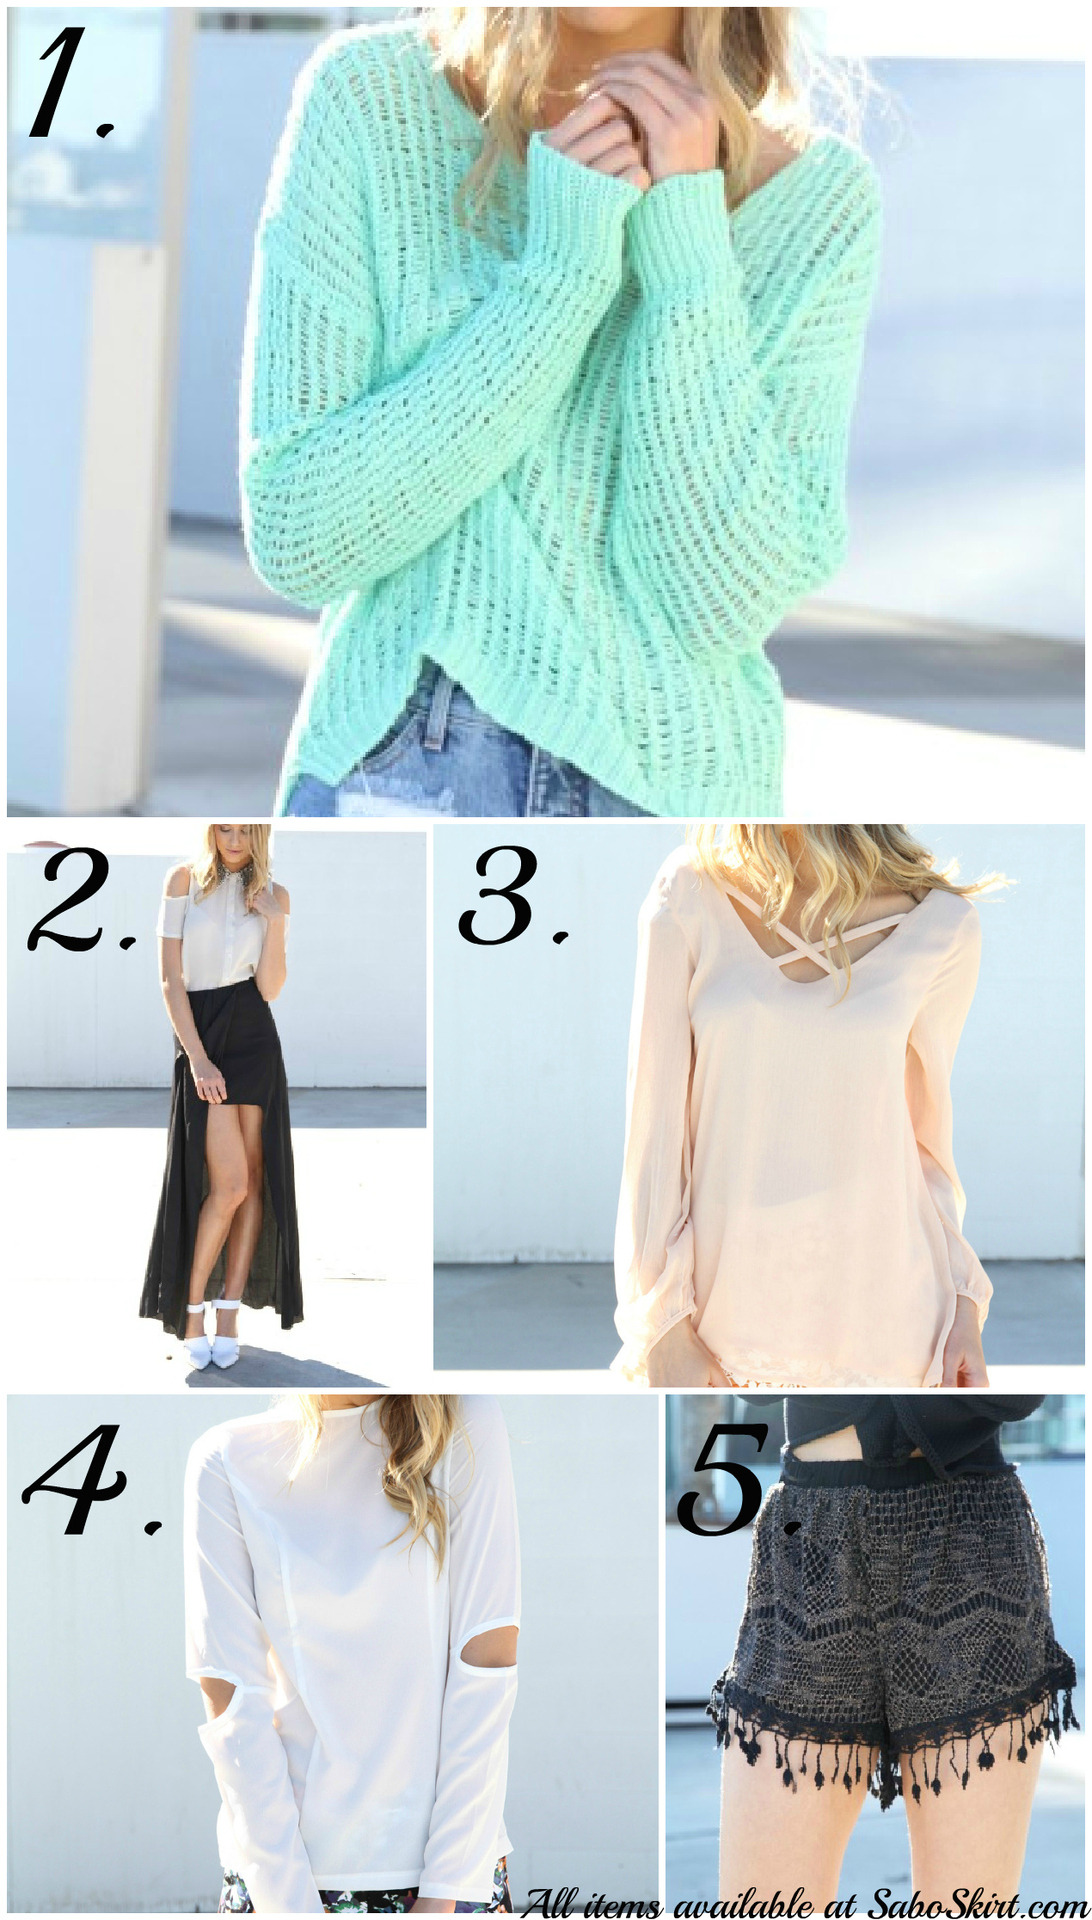 Wanted: Everything at SaboSkirt.com. I have recently become obsessed with the Australian shop and all of their on trend and unique goodies after seeing a friend post images of items she had ordered via Instagram. After sifting through every single item I noticed that not only do they offer the yummiest of hues throughout their stock but each piece is dripping in adorably fun details that make something like a sweater more than just a sweater.   They were kind enough to send me a few items and the quality was amazing. This saggy white knit was one of the items and it is so unbelievably soft and I cannot wait to wear it during my upcoming road trip to Nova Scotia on the cooler nights. I am 6' tall and I have wanted a soft fluttery maxi skirt for awhile but unless they are sheer and light weight it tends to look like too much. Luckily for me this adorable floral midi skirt was sent along with the knit and it couldn't fit more perfectly. The skirt also features two high slits, one over each leg so when you walk to flutters delicately around your legs, I really could't be happier.    Above are some of my current favourite covetable items in stock that I need to get my paws on immediately. Click the prices to go directly to the items listed! Long back mint knit - $52 Drape Maxi Skirt - $48 Apricot criss crop top - $48 Slit elbow top - $36 Black tassel shorts - $42  BlogLovin'   :     Twitter    :    Instagram: TheBlondeJournal